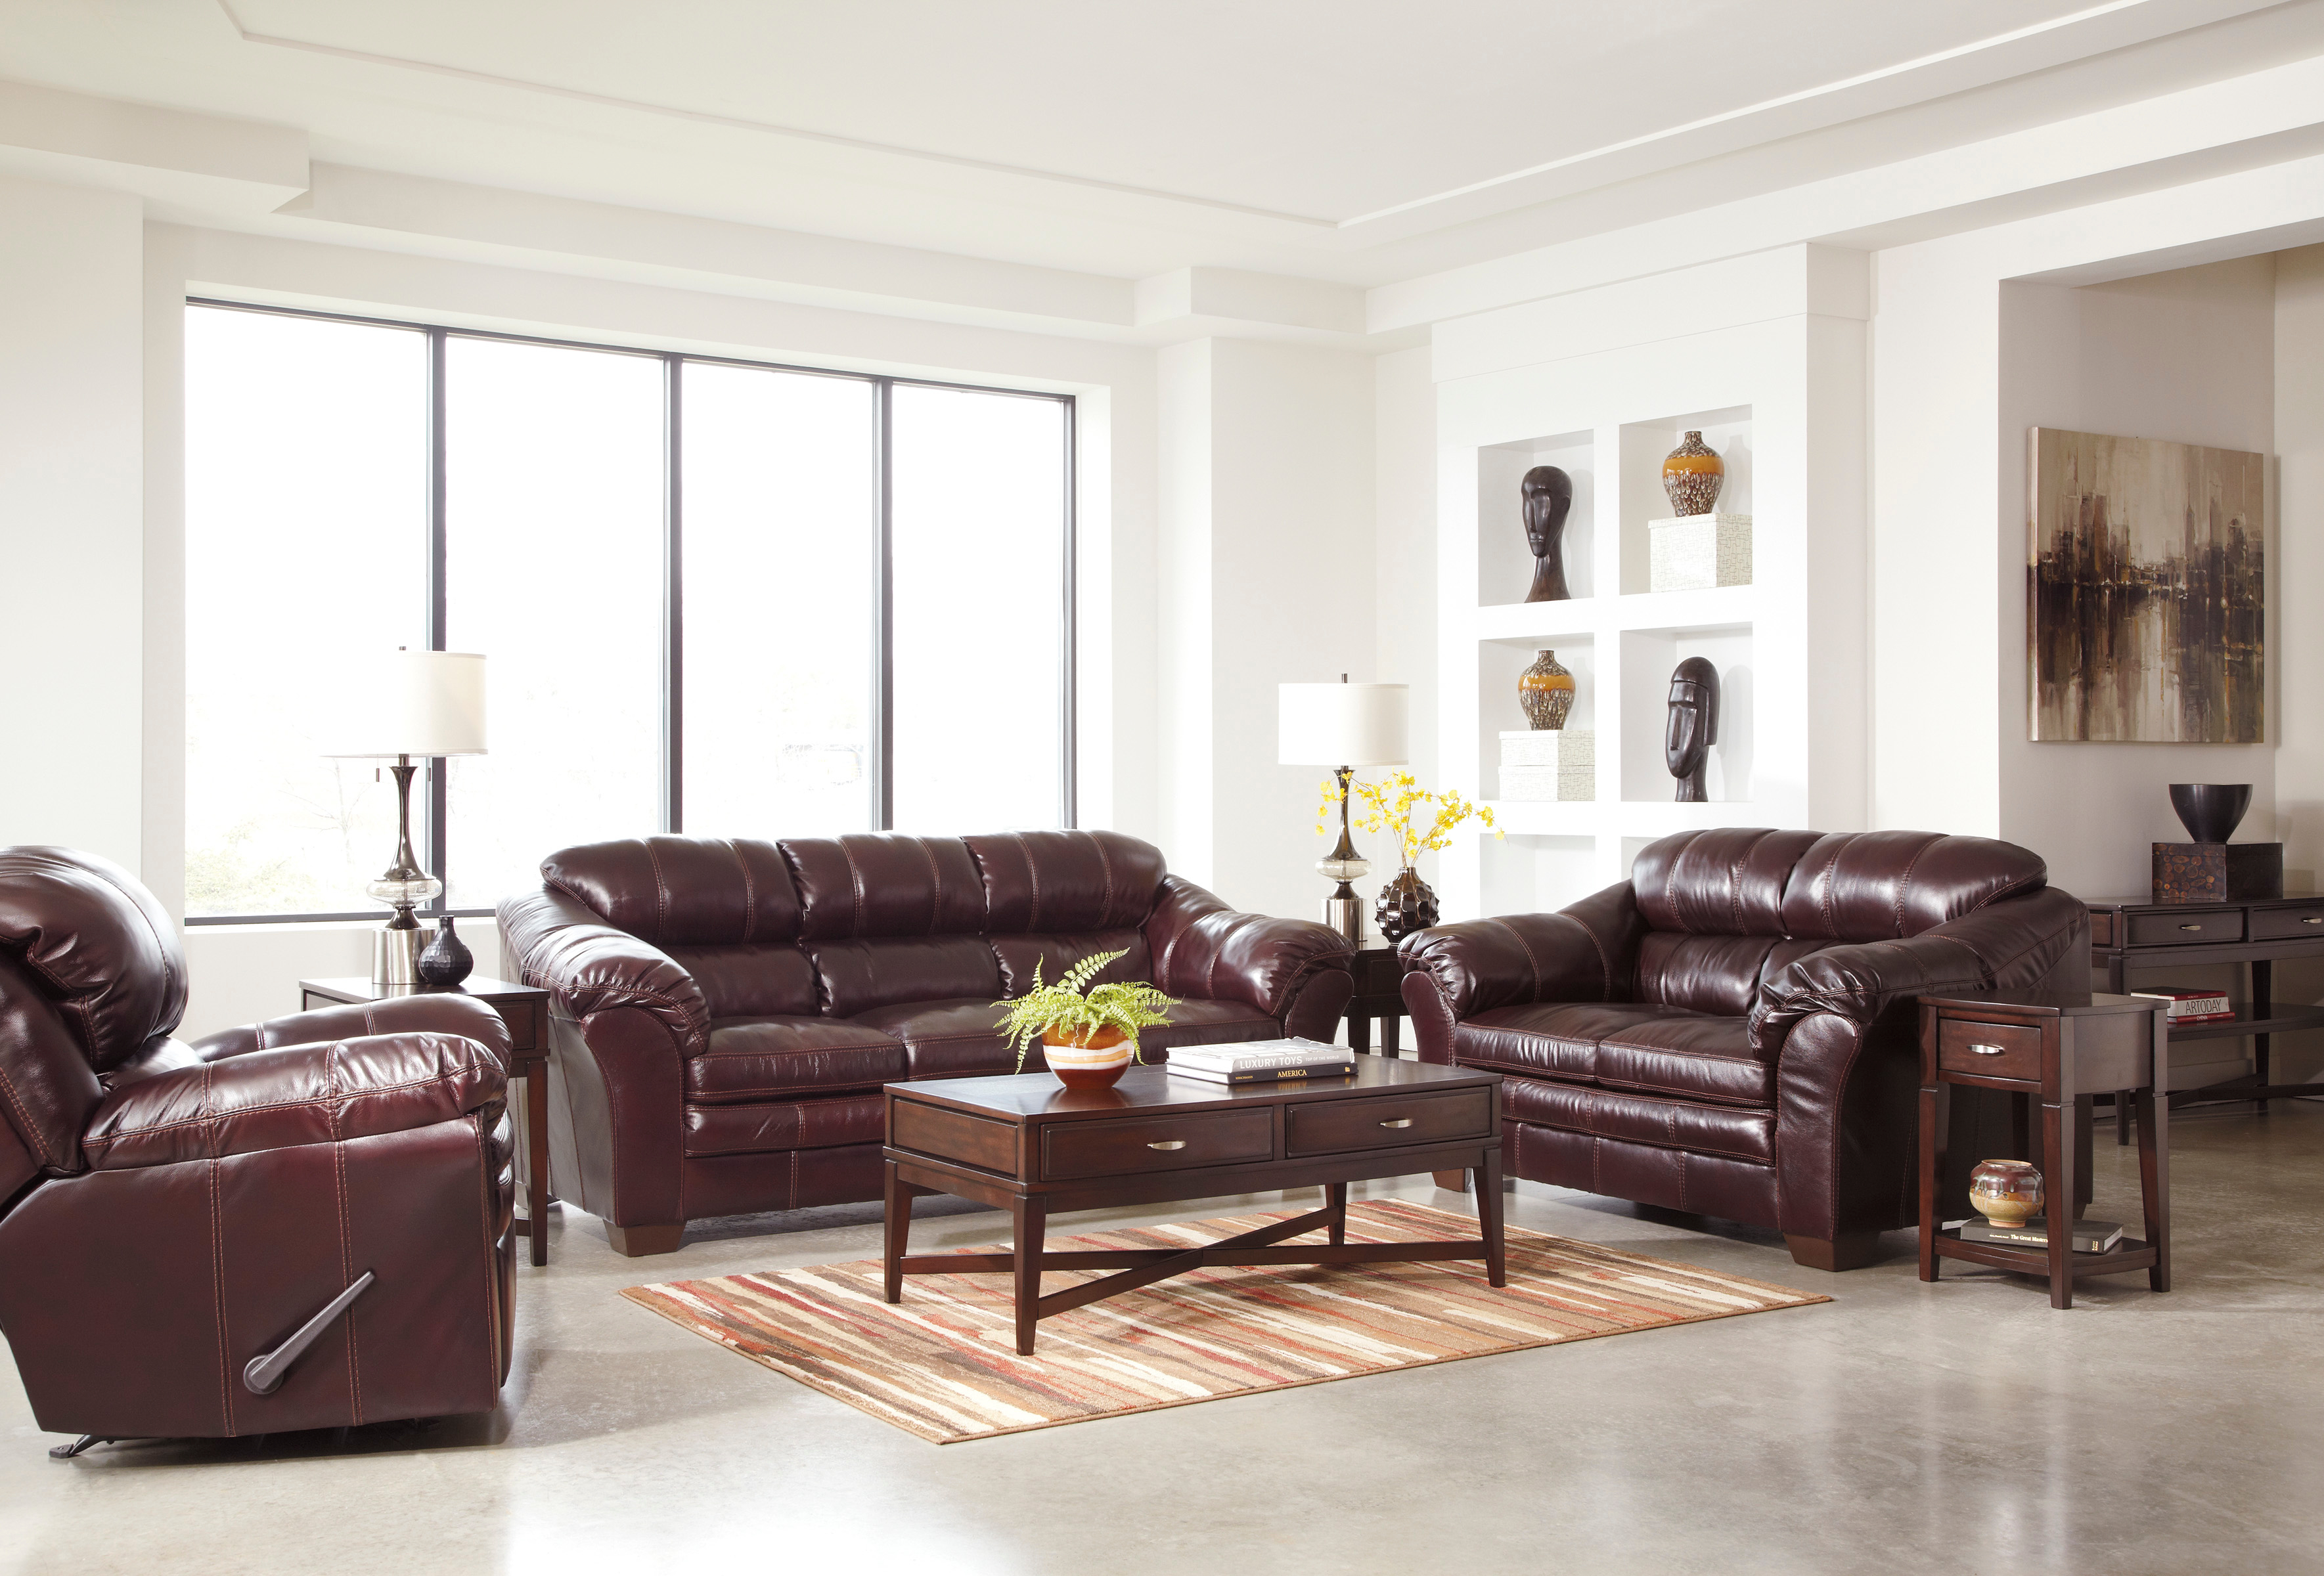 Ashley Furniture Homestore Outlet In San Francisco Ca 94124